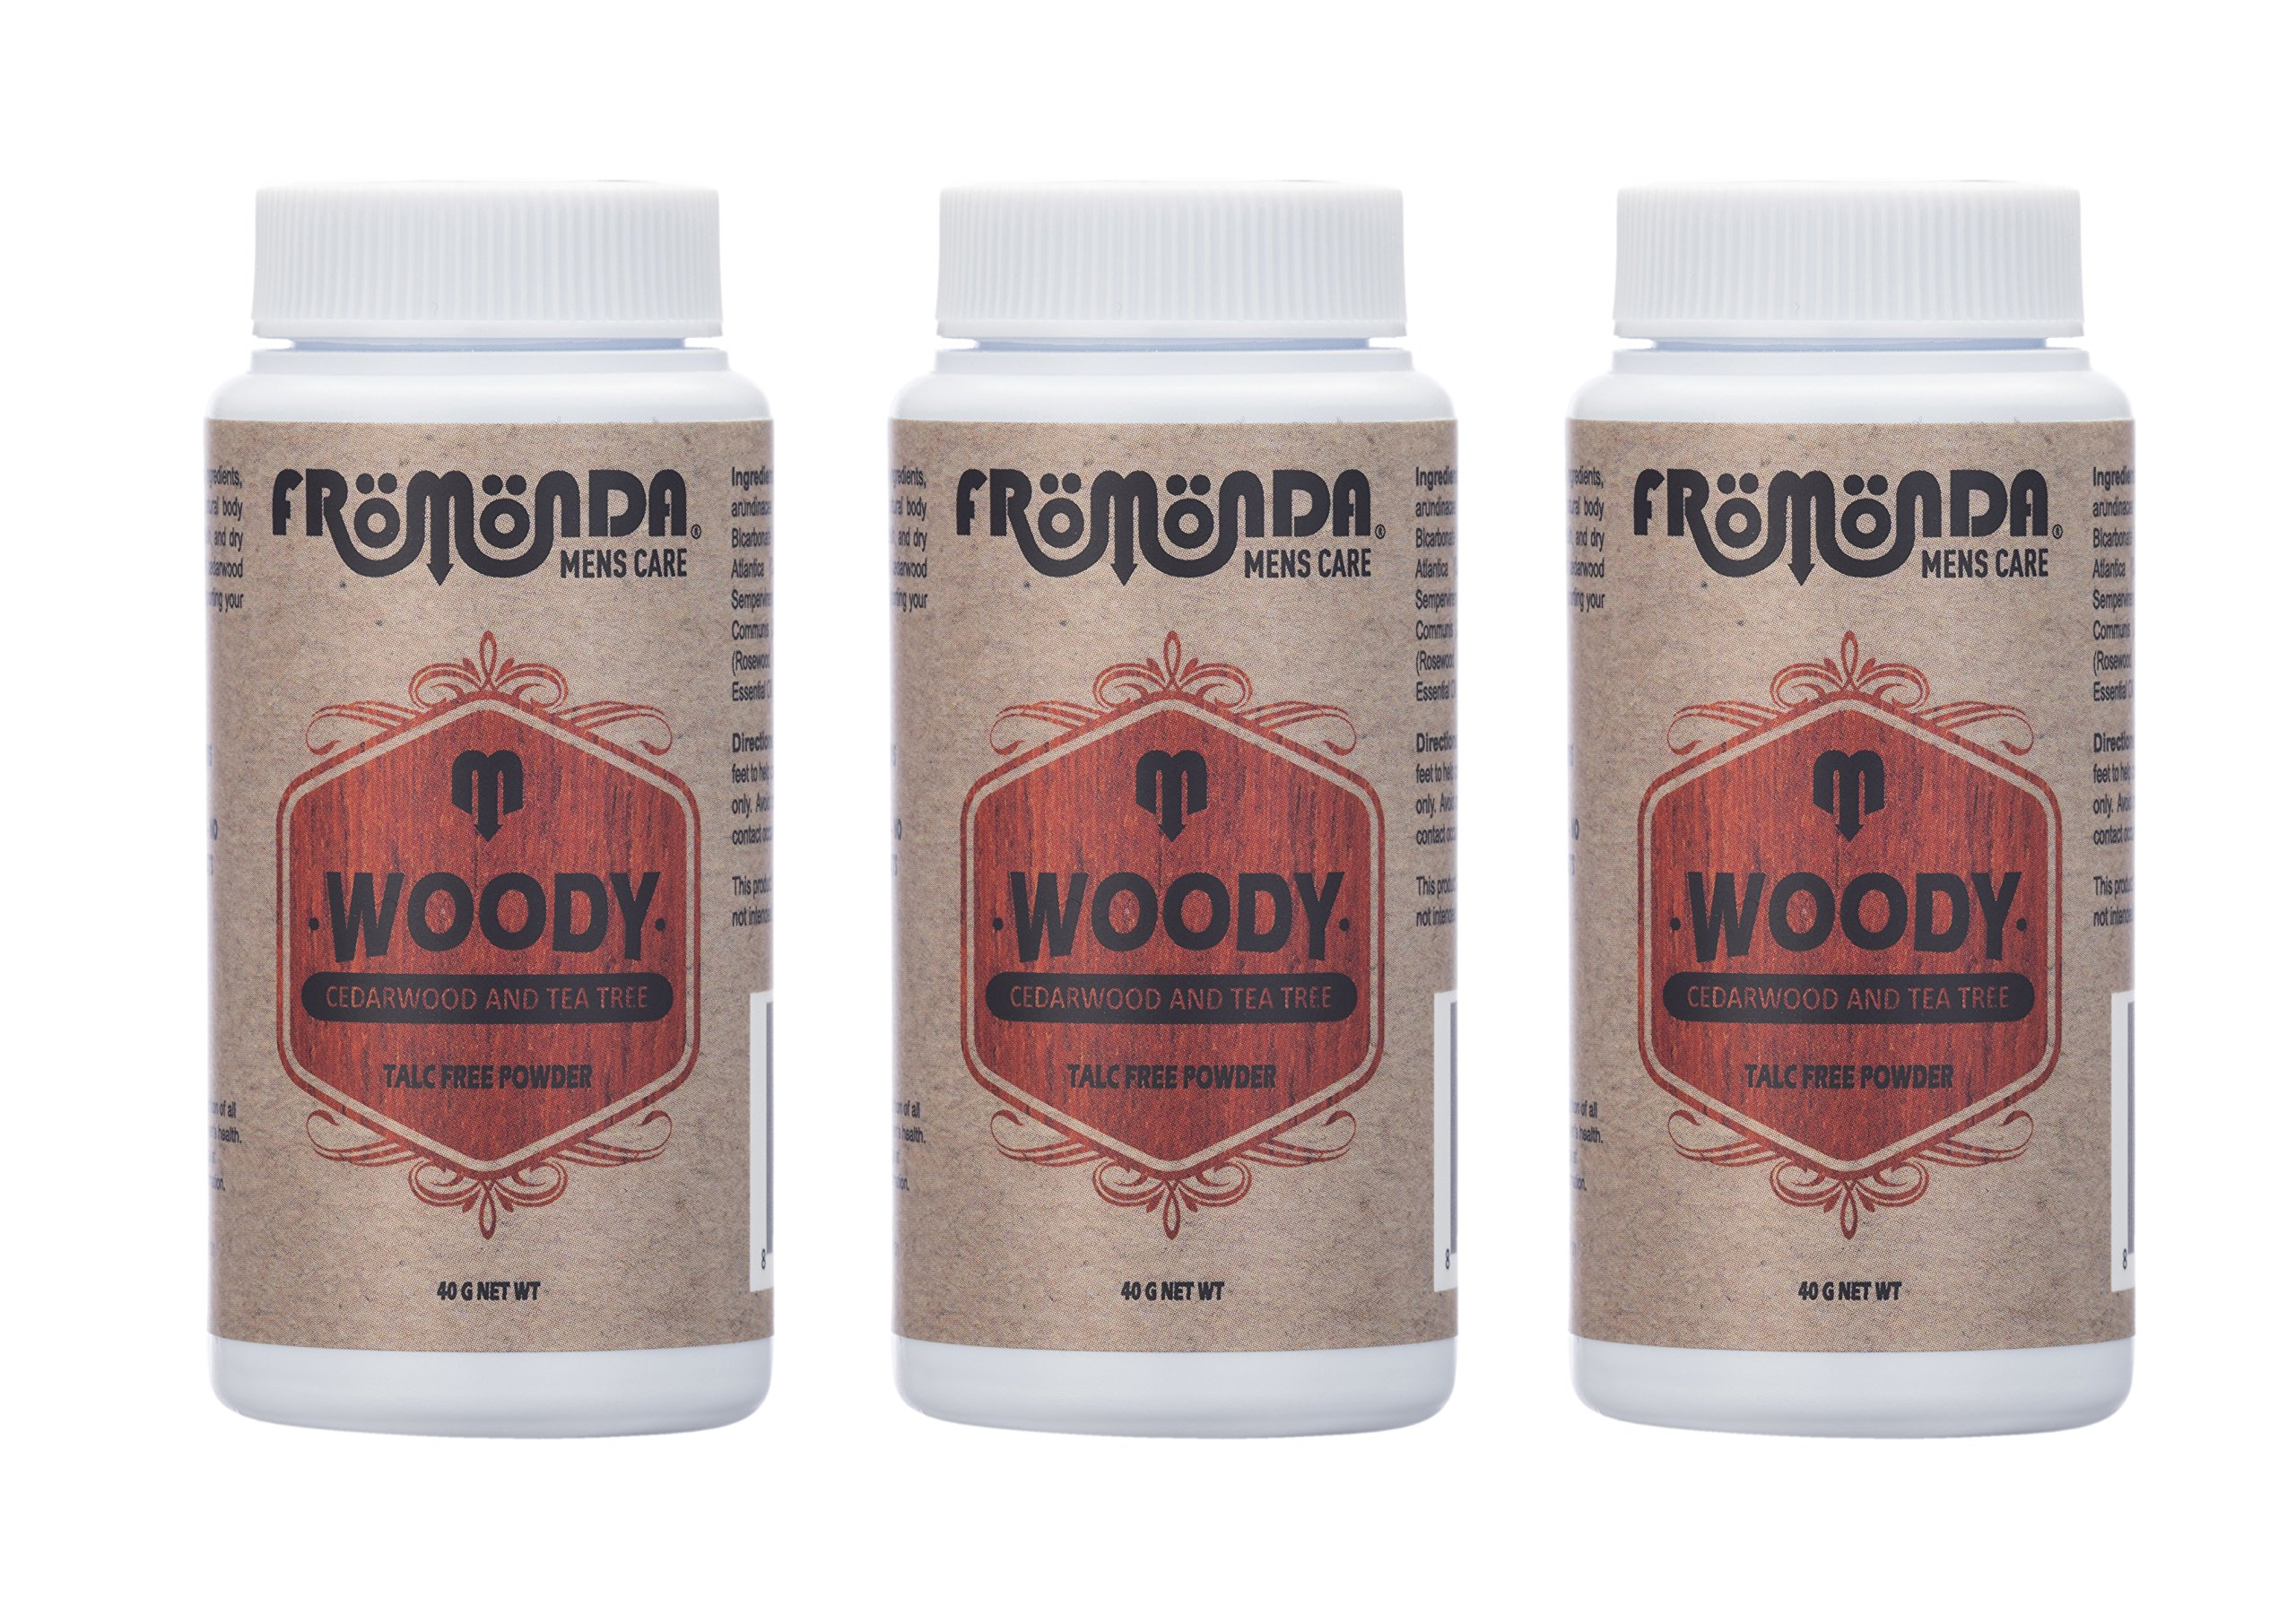 Fromonda Woody Talc Free Body Powder - Natural Dry Deodorant Made With Essential Oils For Men & Women – Athletic Dusting Powder – Vegan - 1.4 OZ 3 Pack